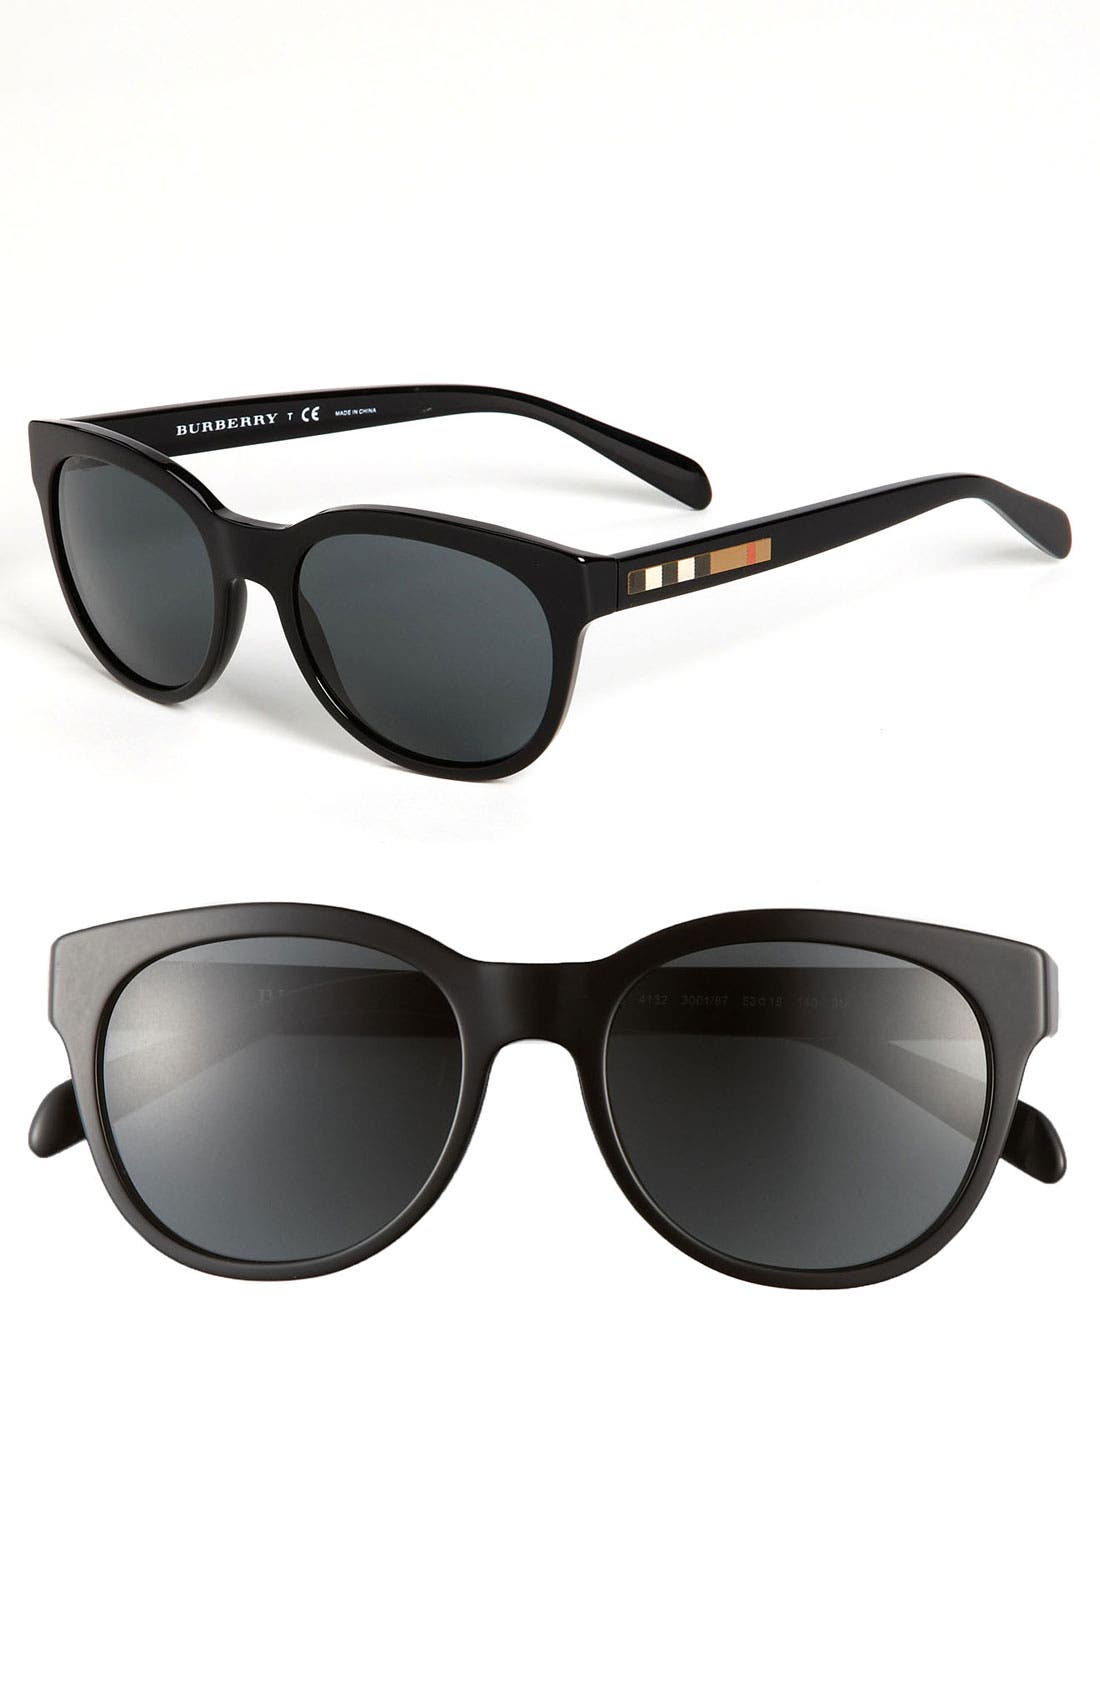 Main Image - Burberry Sunglasses